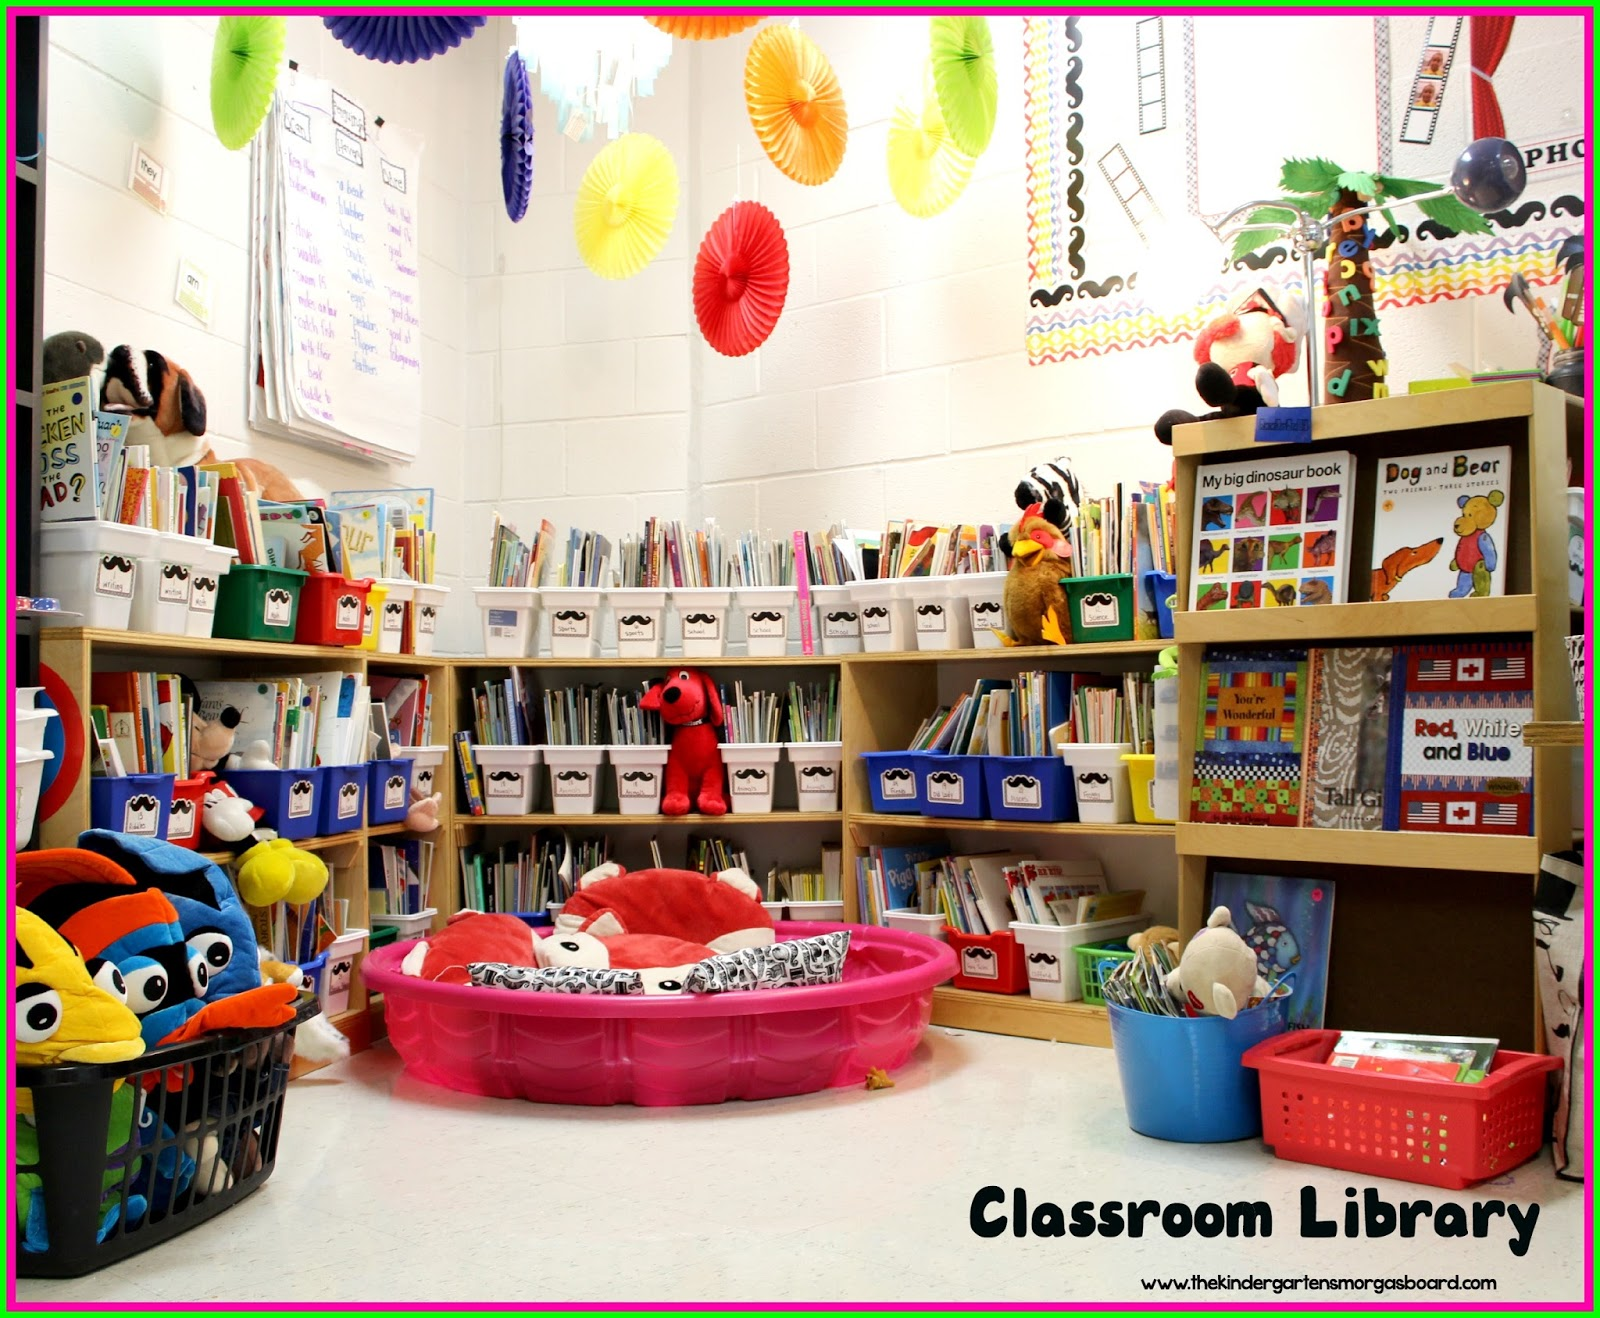 Library clipart classroom library Library library clipart classroom Download